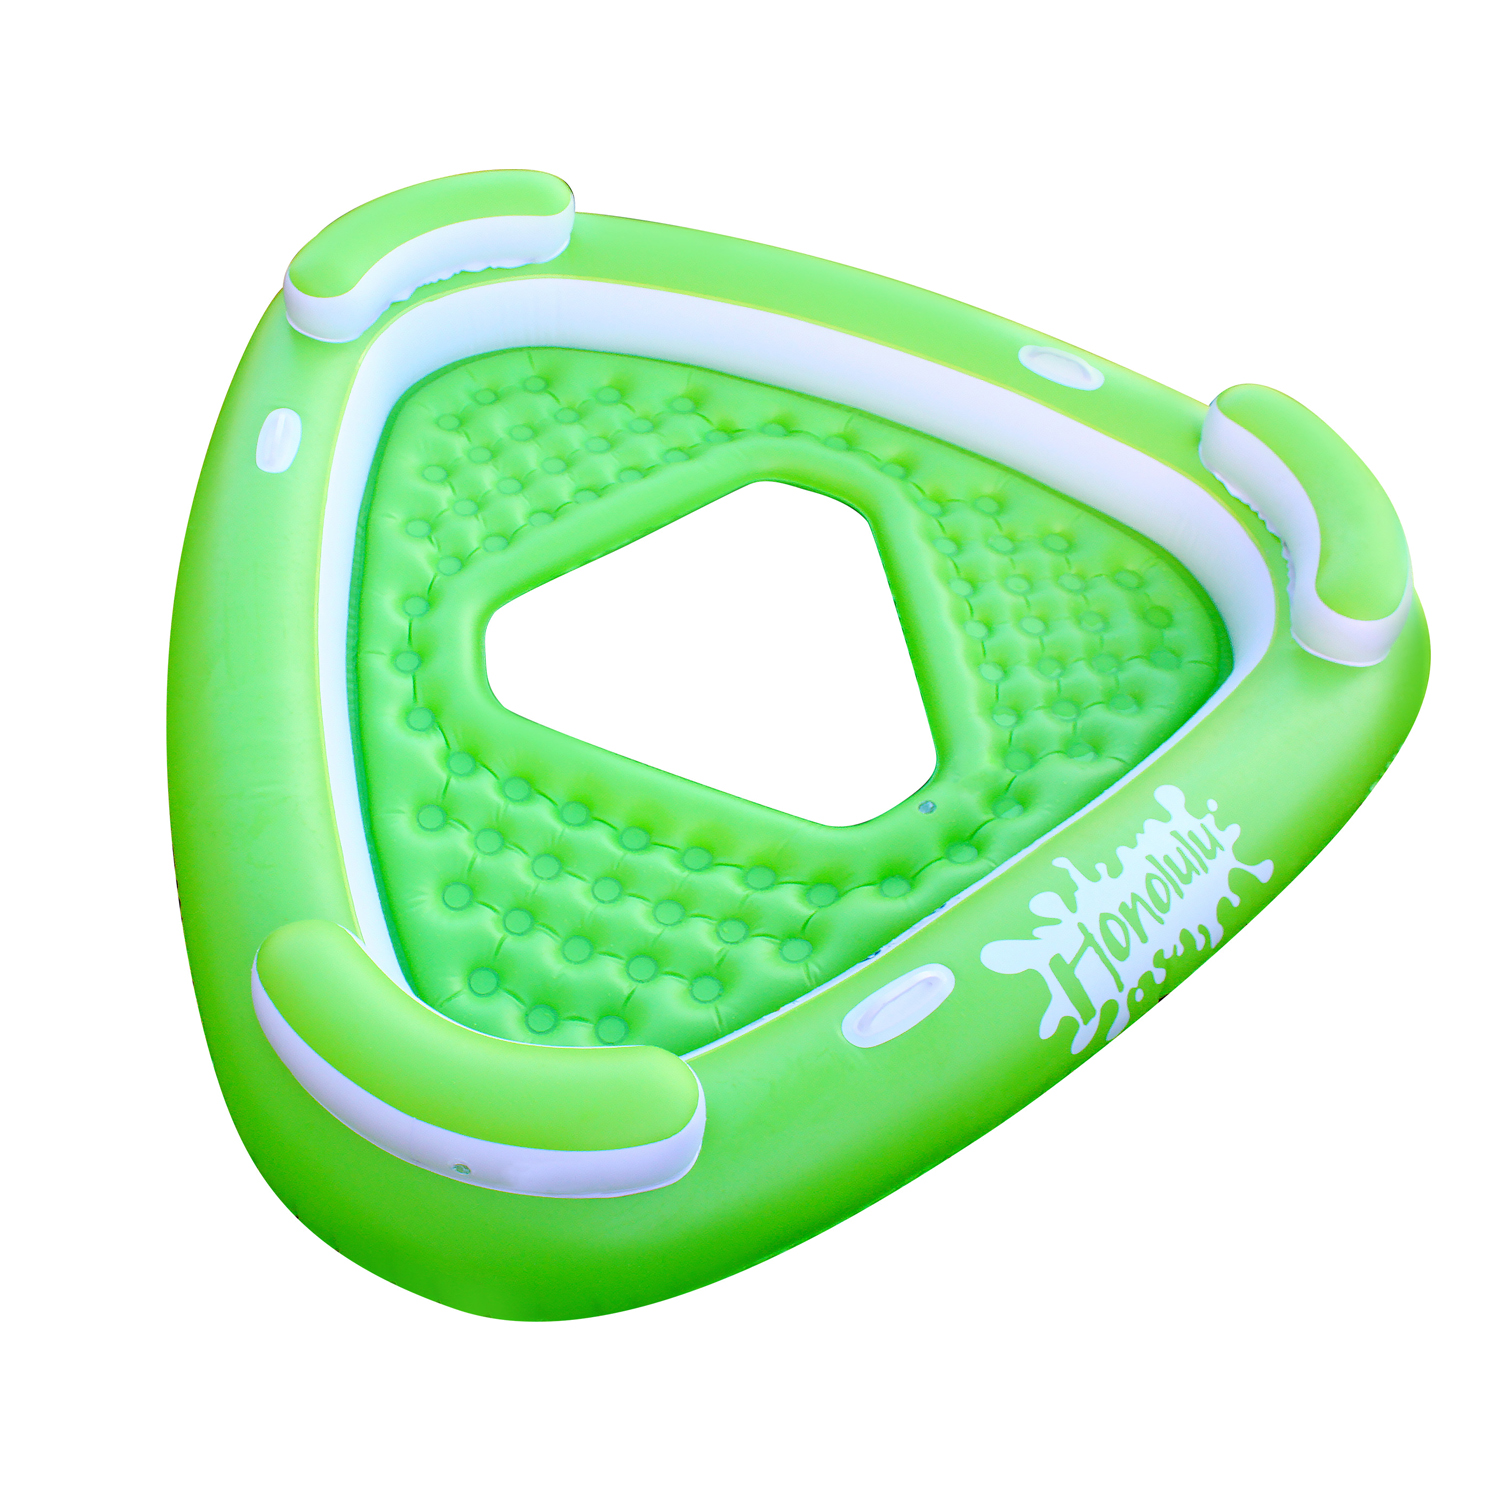 Party Dock 3 Person Inflatable Honolulu Island Tube Biscuit Lounge